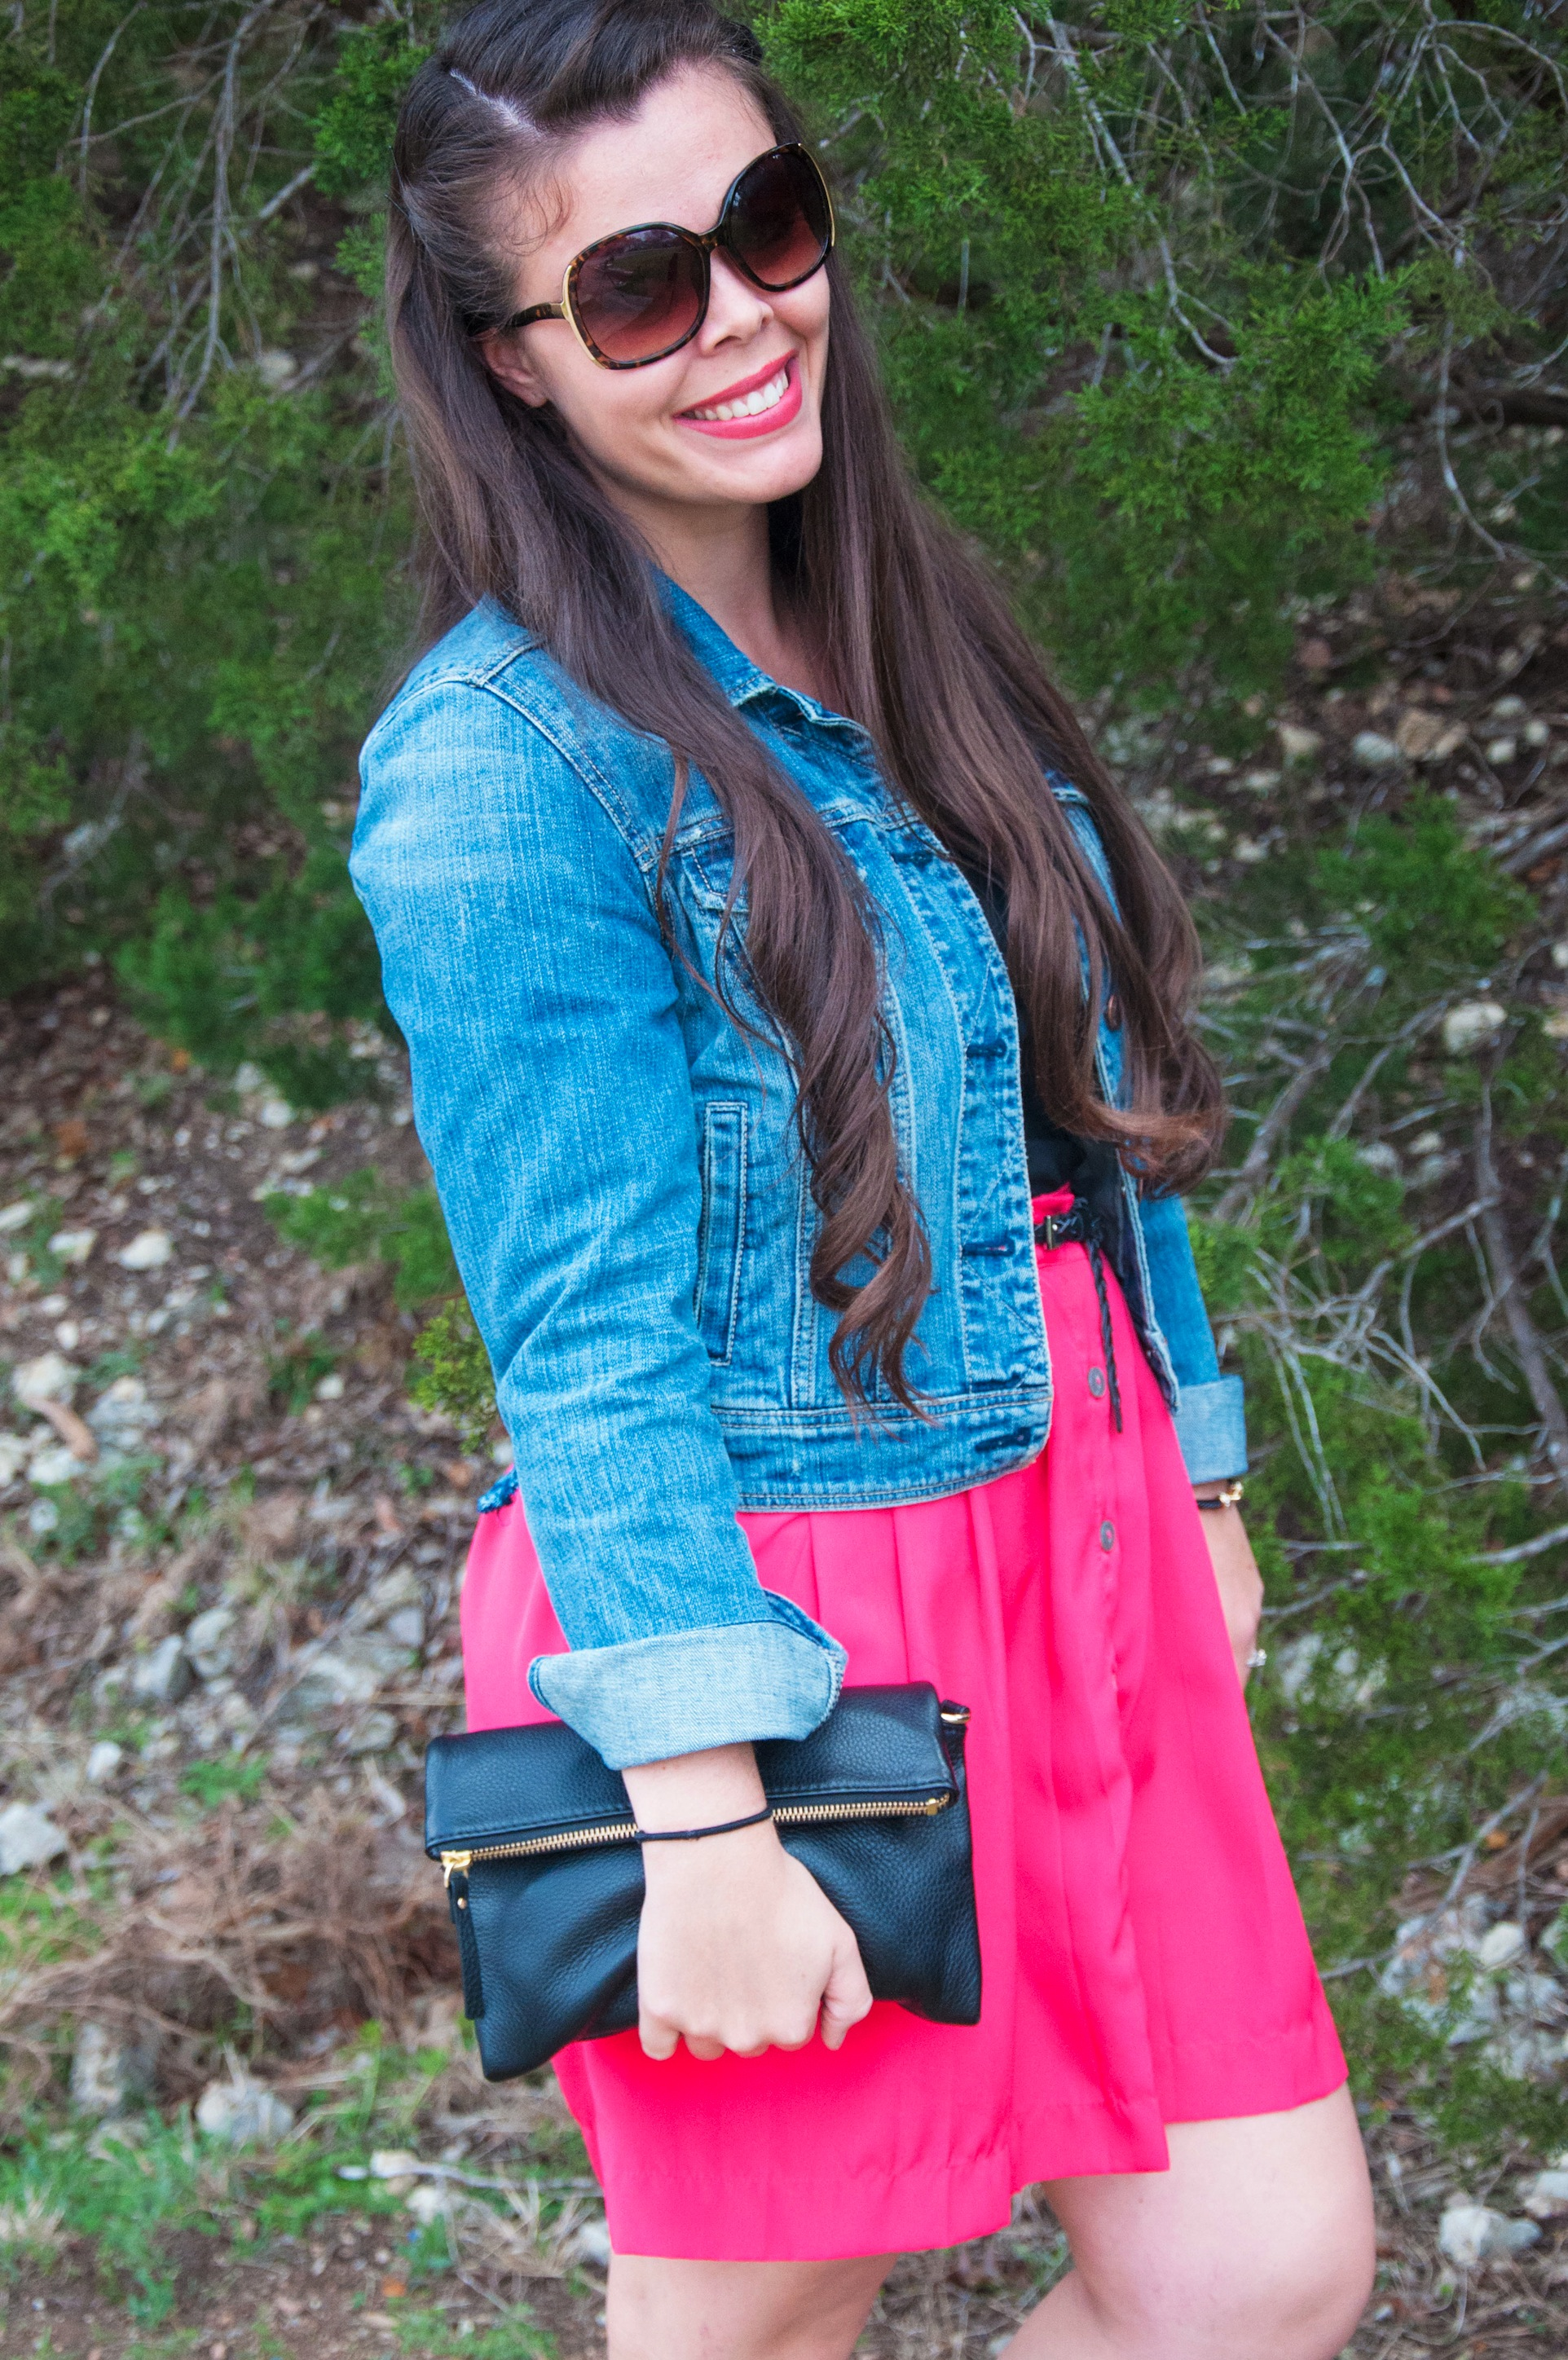 Jean jacket and pink skirt